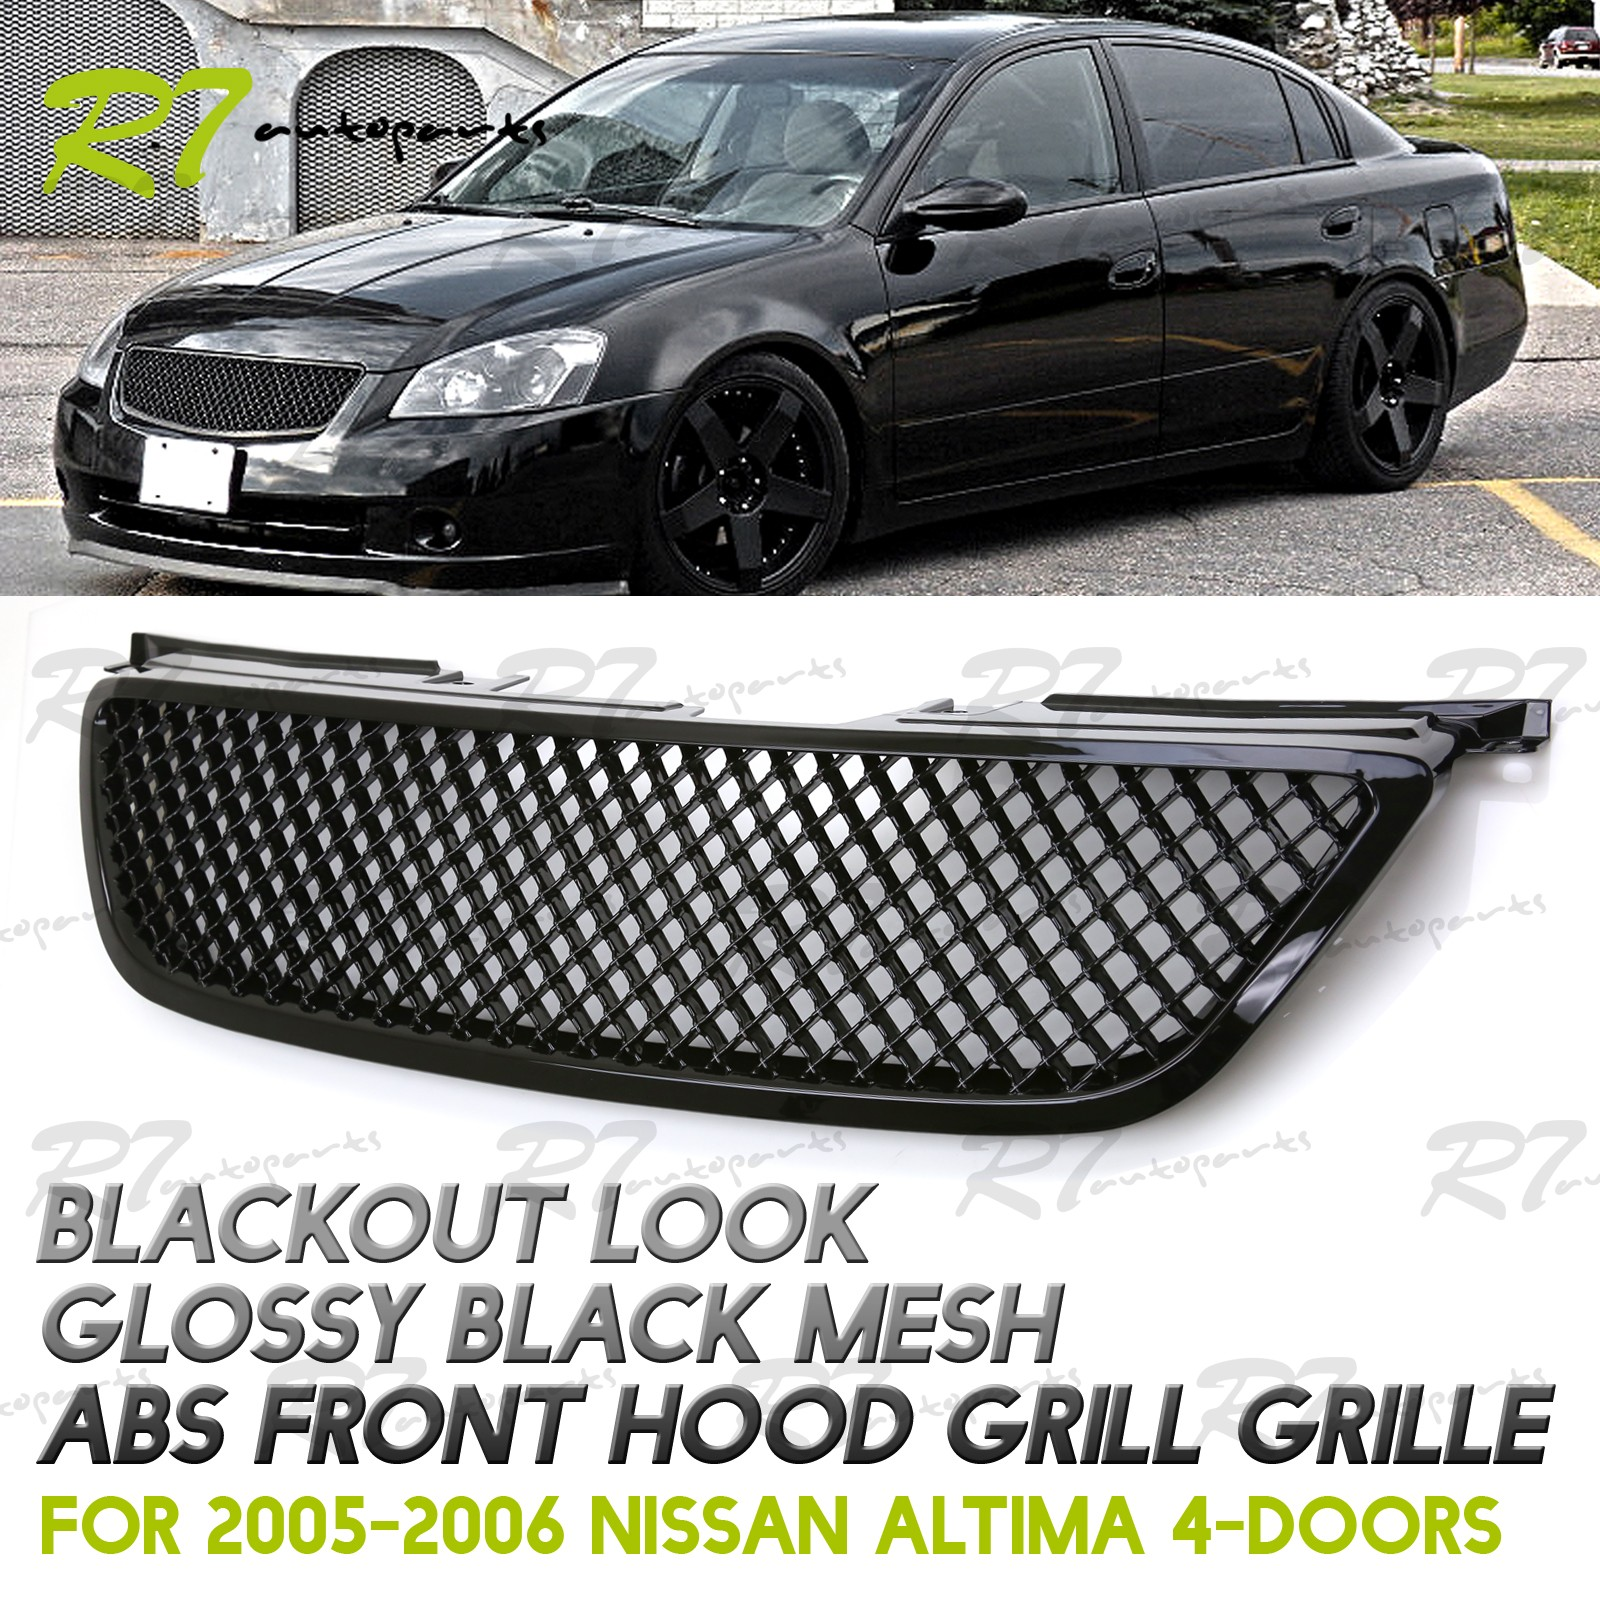 FITS 02 04 NISSAN ALTIMA BLACK OUT JDM STYLE 3D MESH ABS FRONT